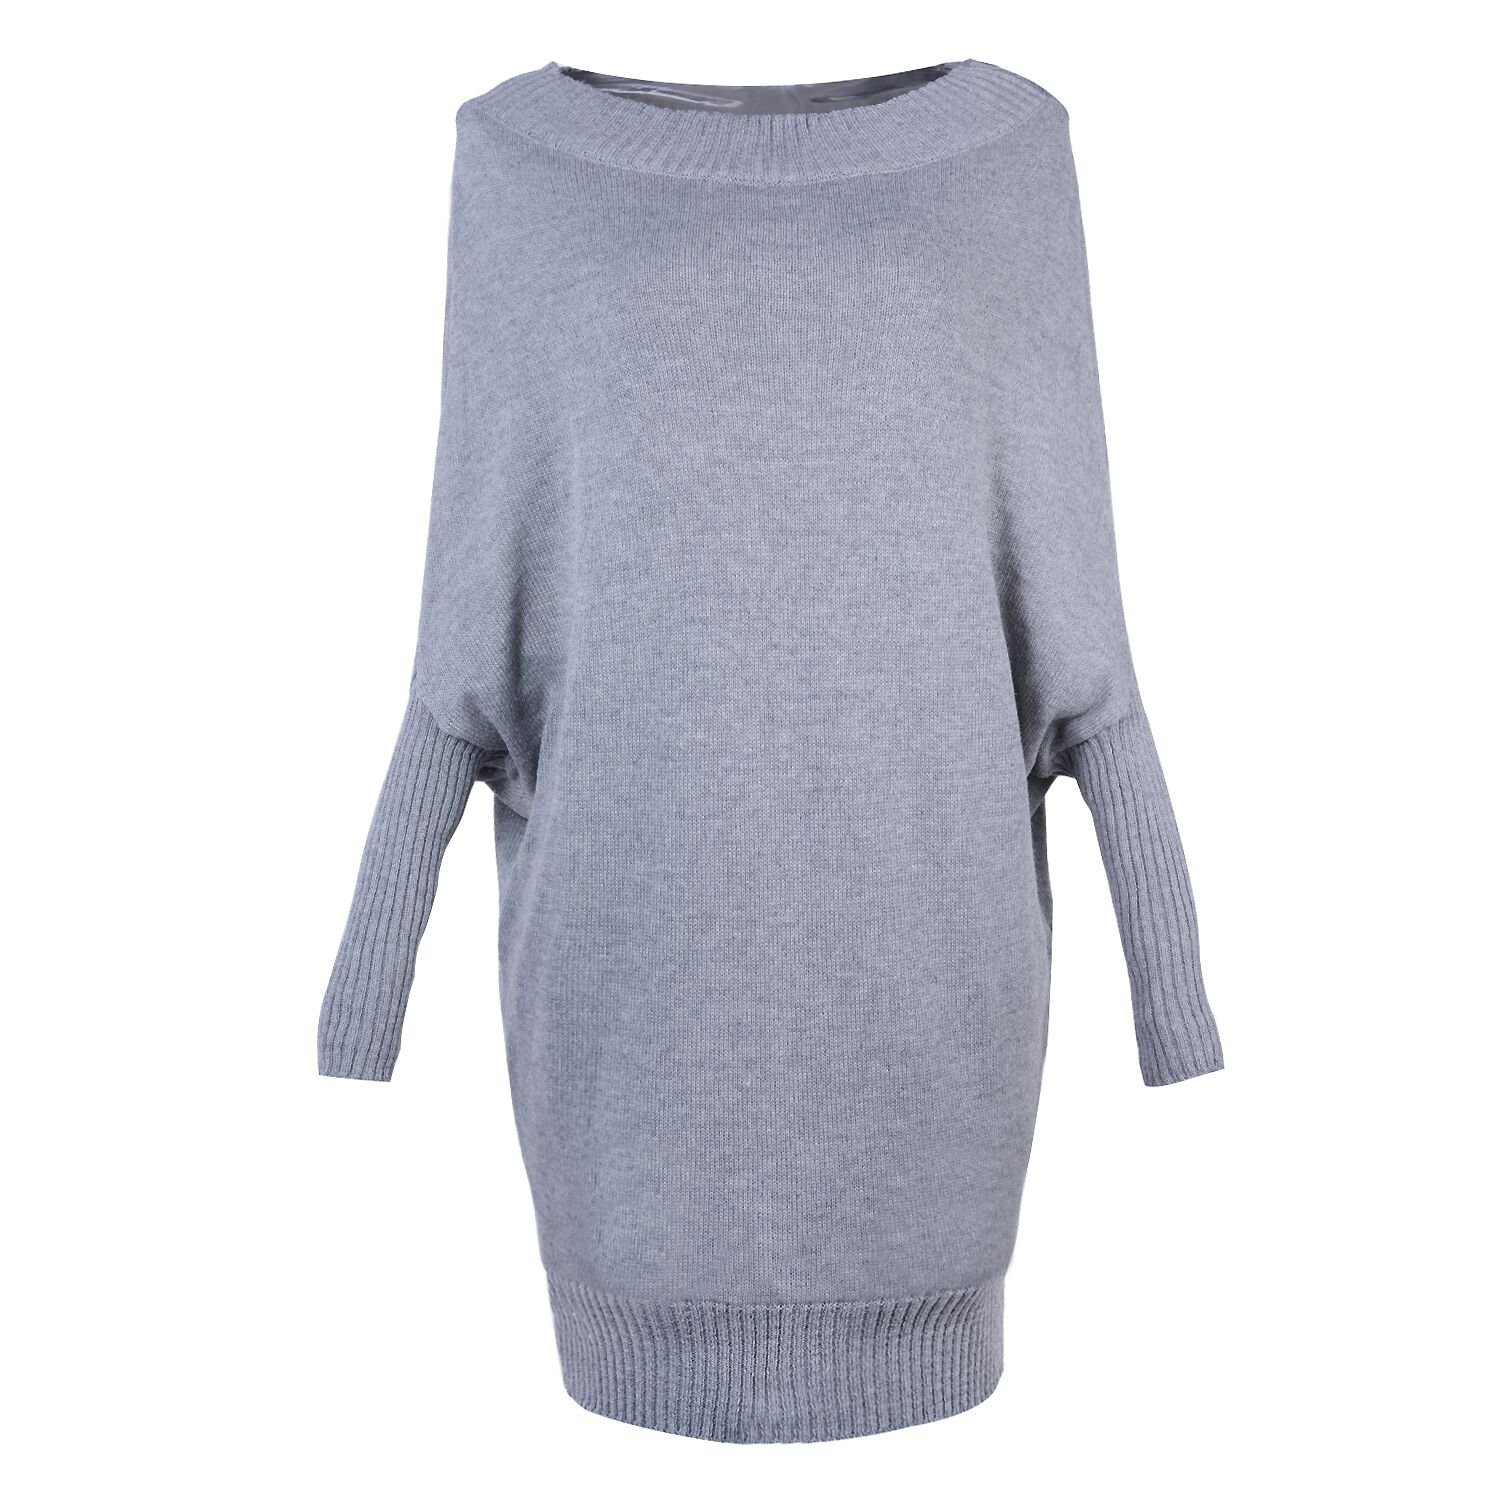 4b173aaacbe6b ASSKDAN Femme Sexy Pull Robe Six Couleur Manche Longue Oversize Sweater  Automne Hiver